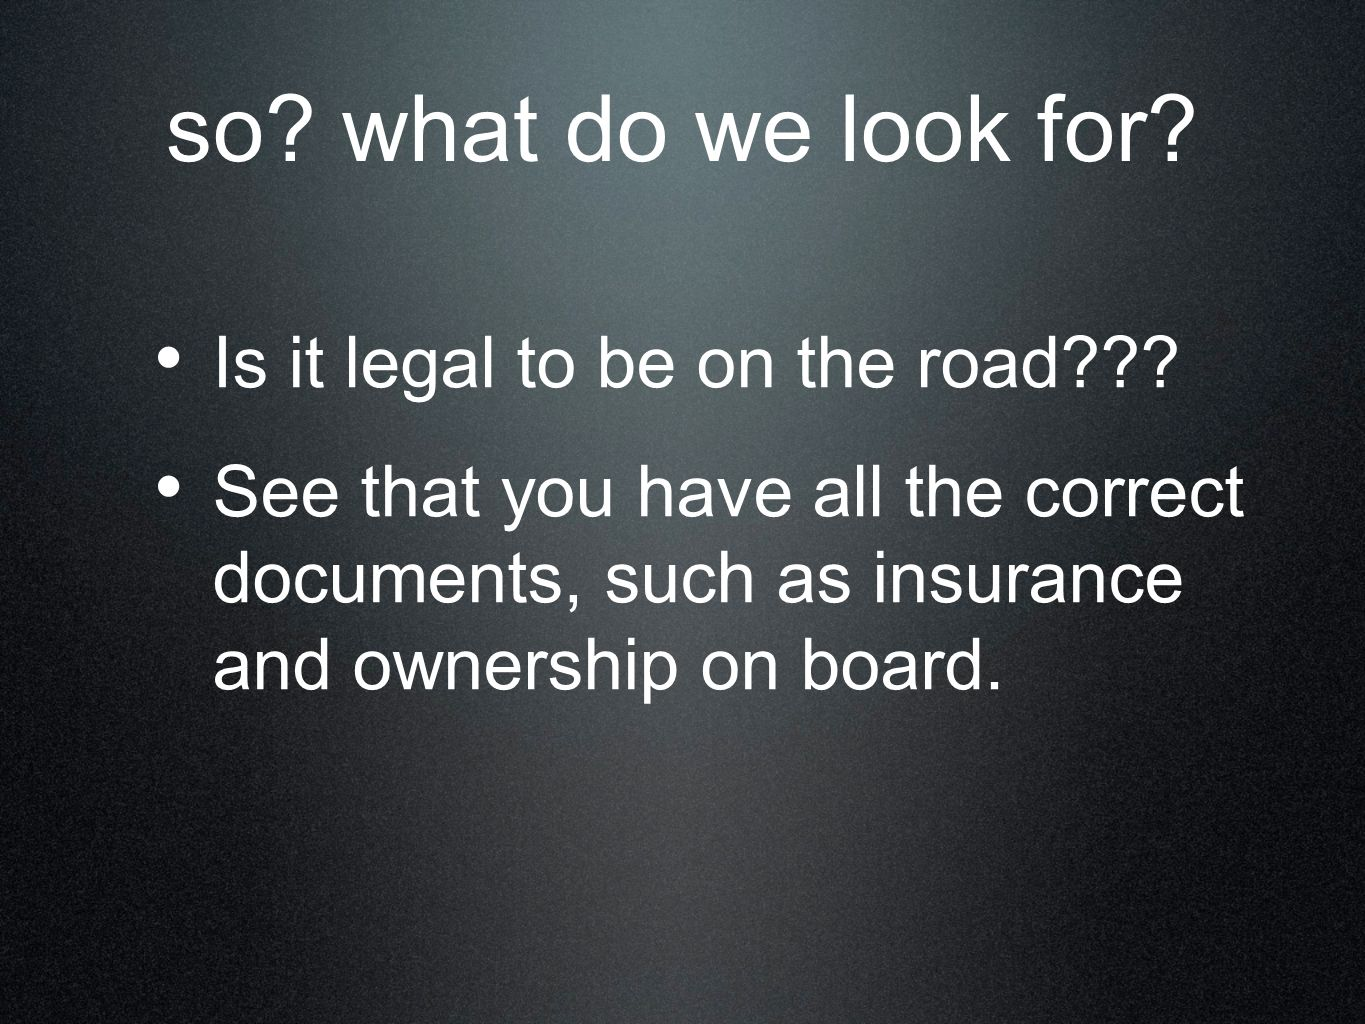 so? what do we look for? Is it legal to be on the road??? See that you have all the correct documents, such as insurance and ownership on board.